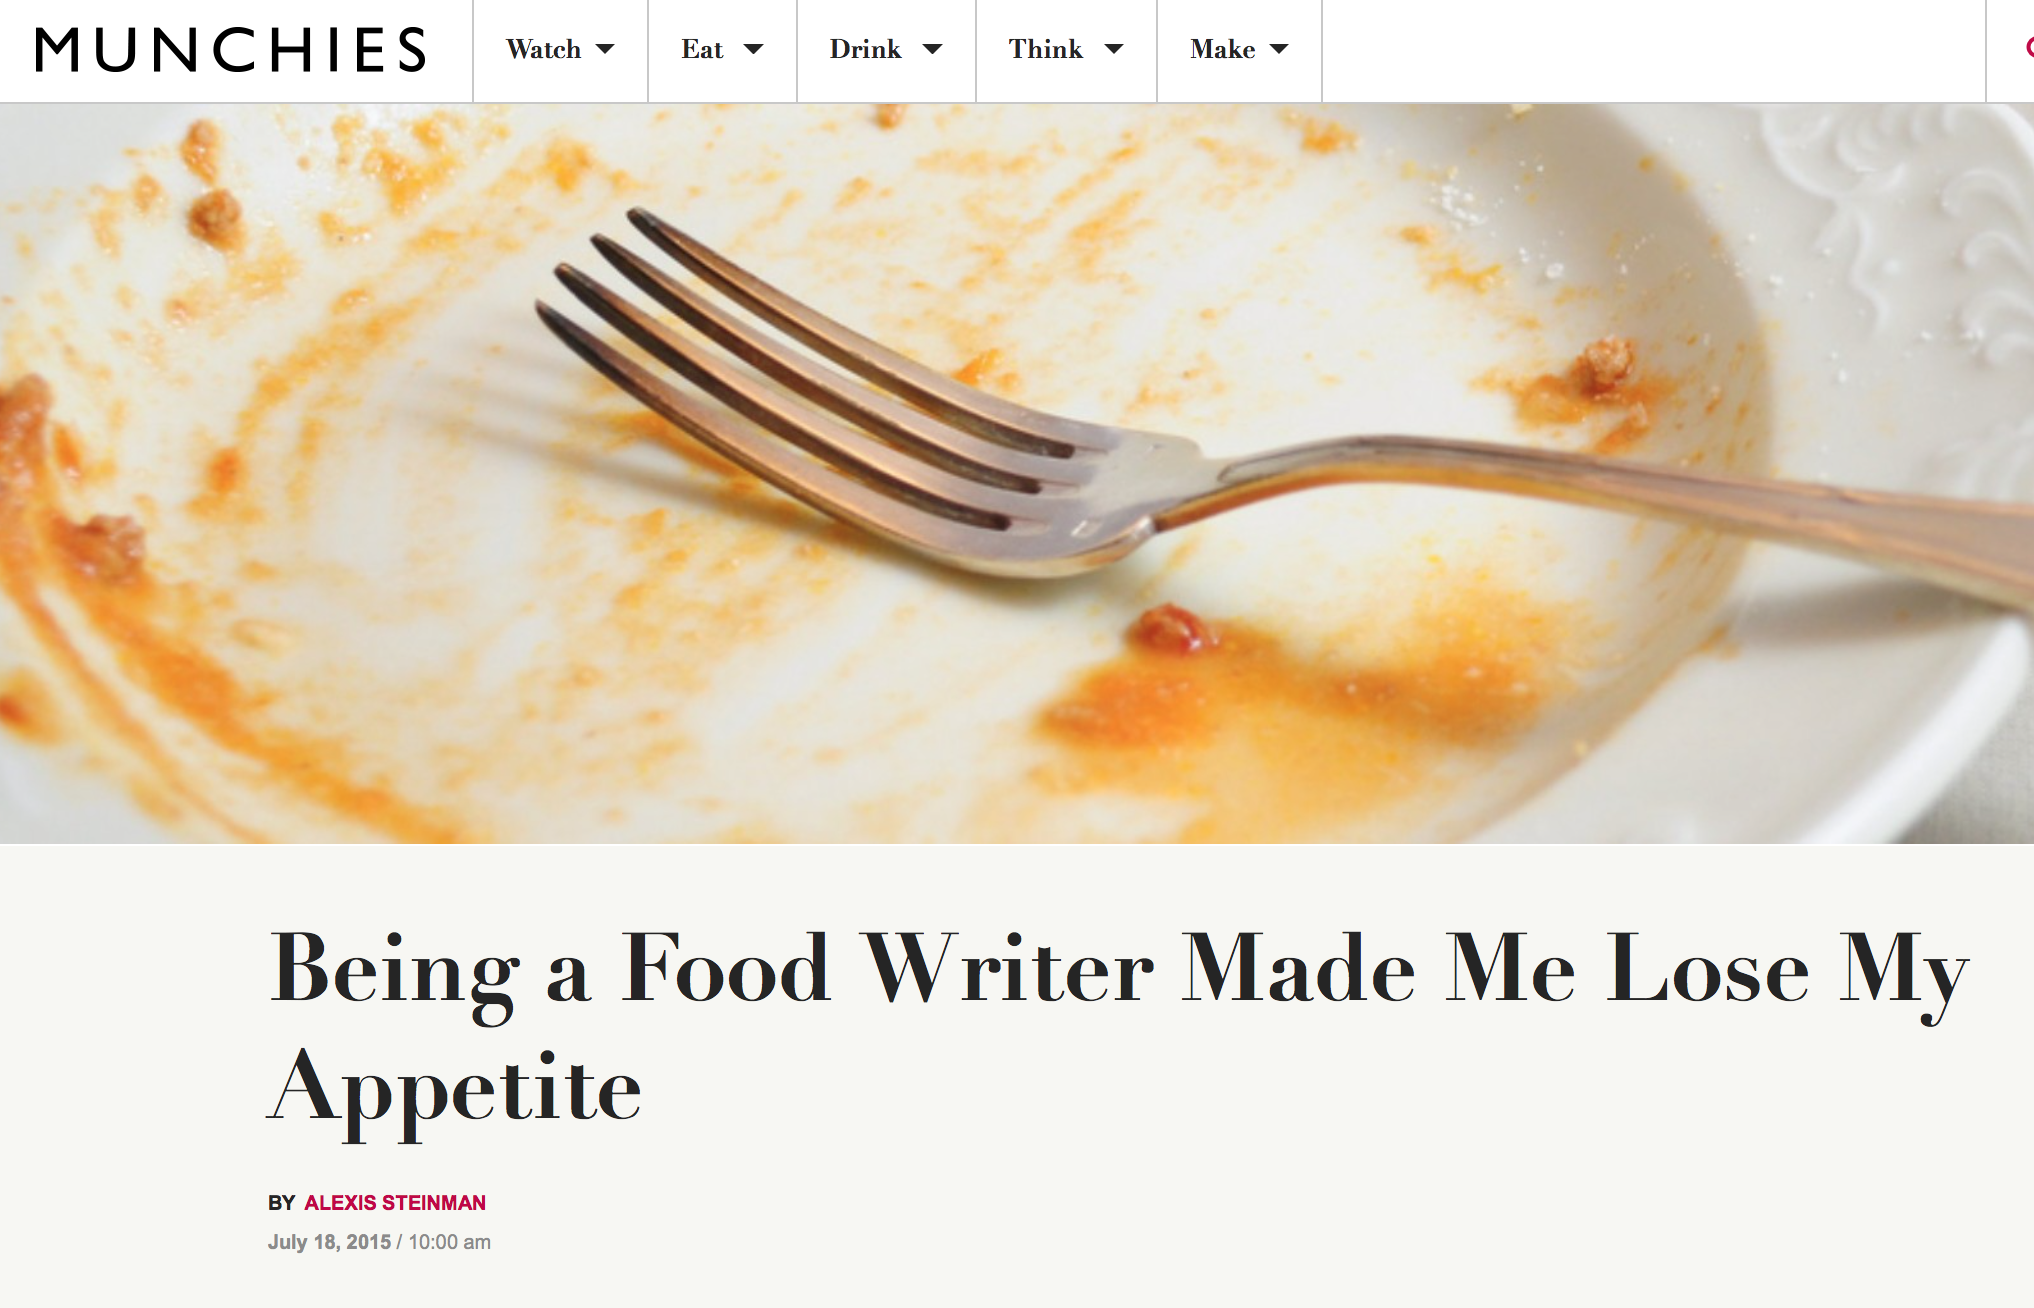 Food Writer Made Me Lose My Appetite